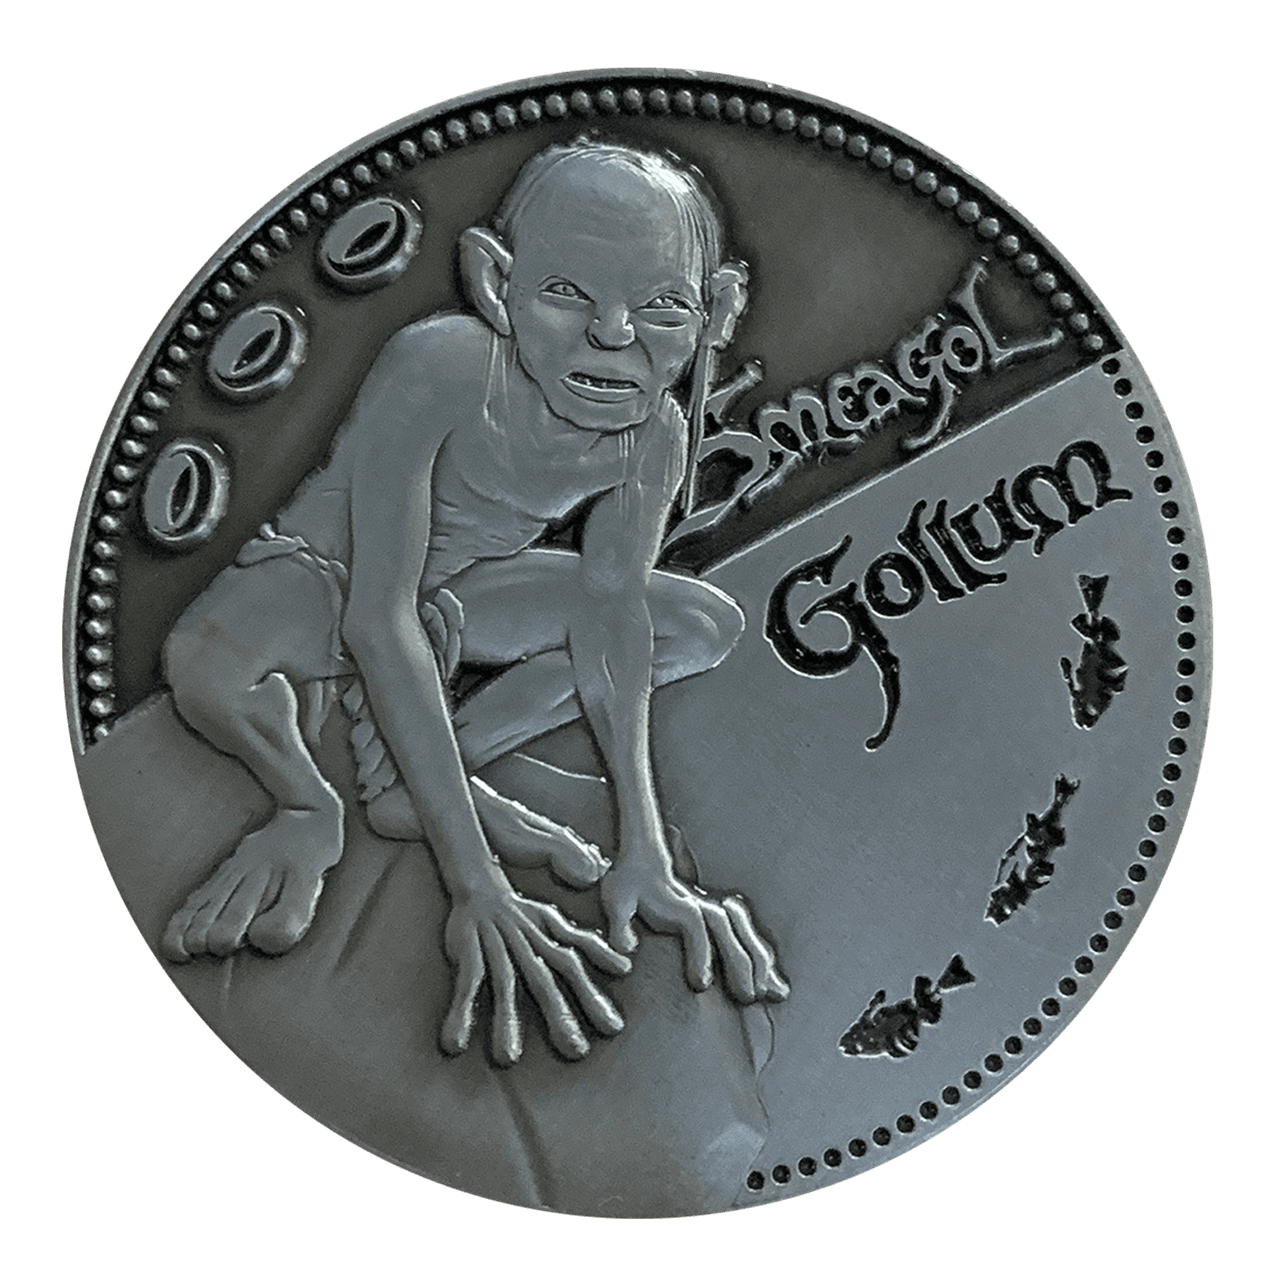 The Lord of the Rings: Gollum Limited Edition Coin - 4